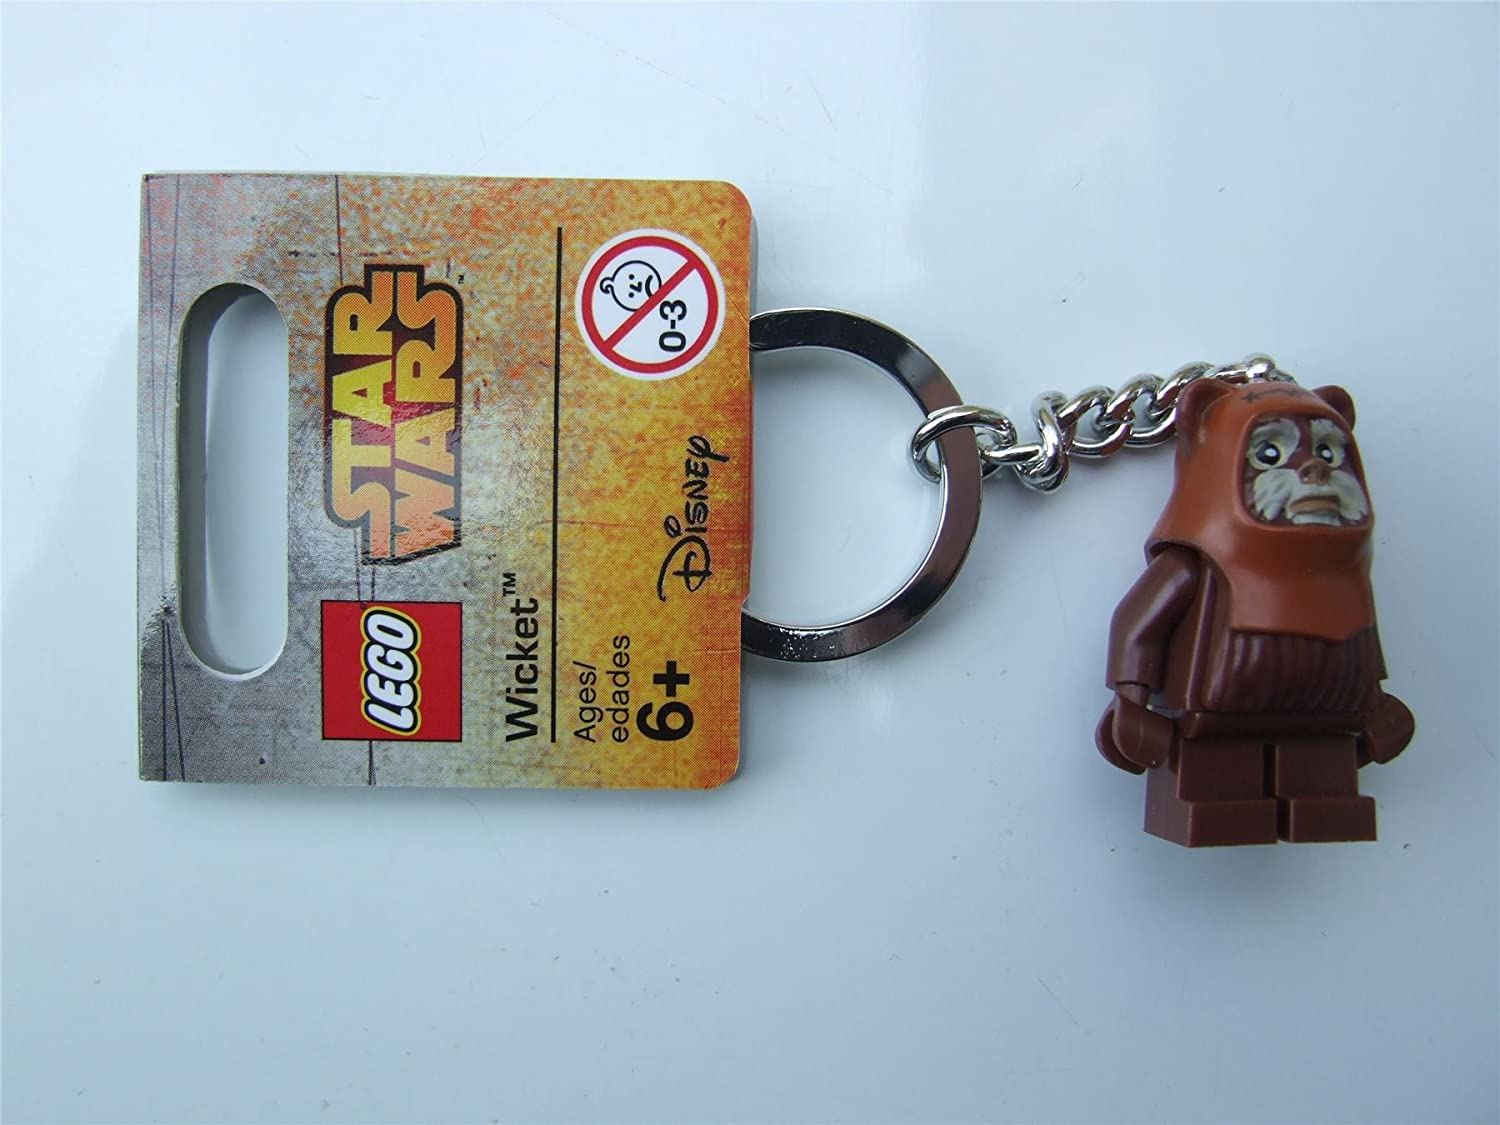 Lego Star Wars Wicket Key Chain